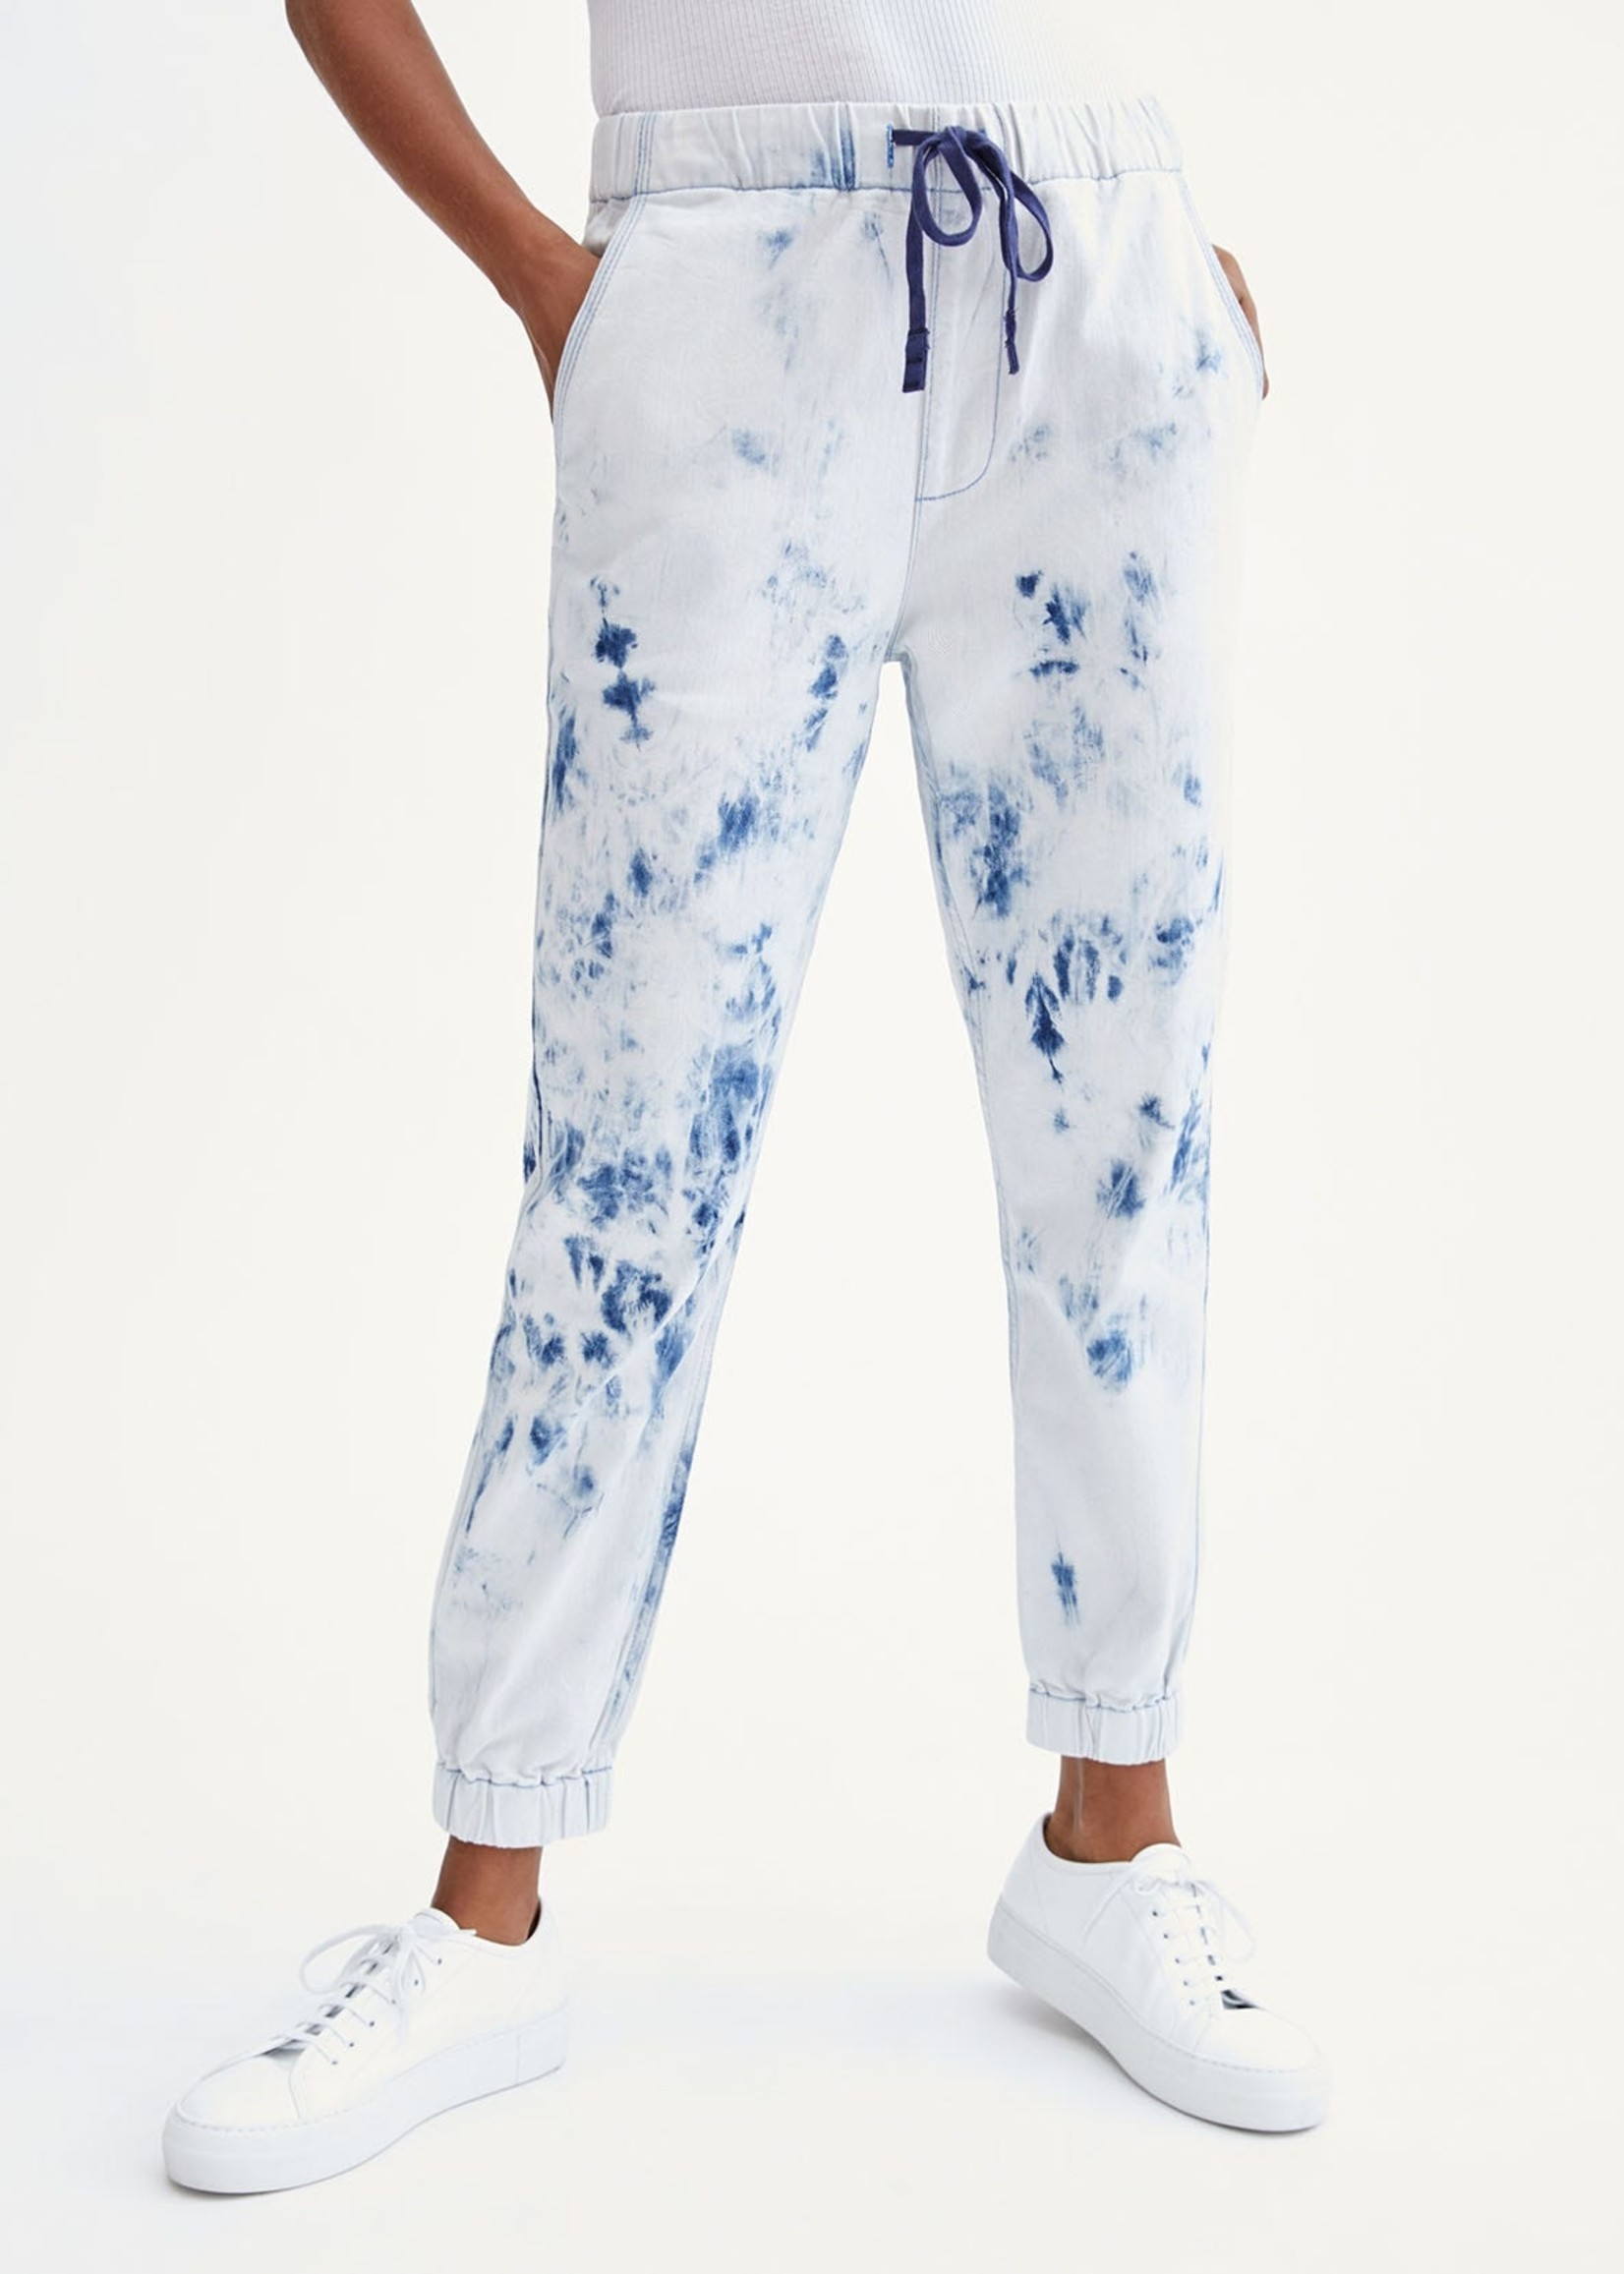 7 for all mankind Tie Dye Drawstring Jogger